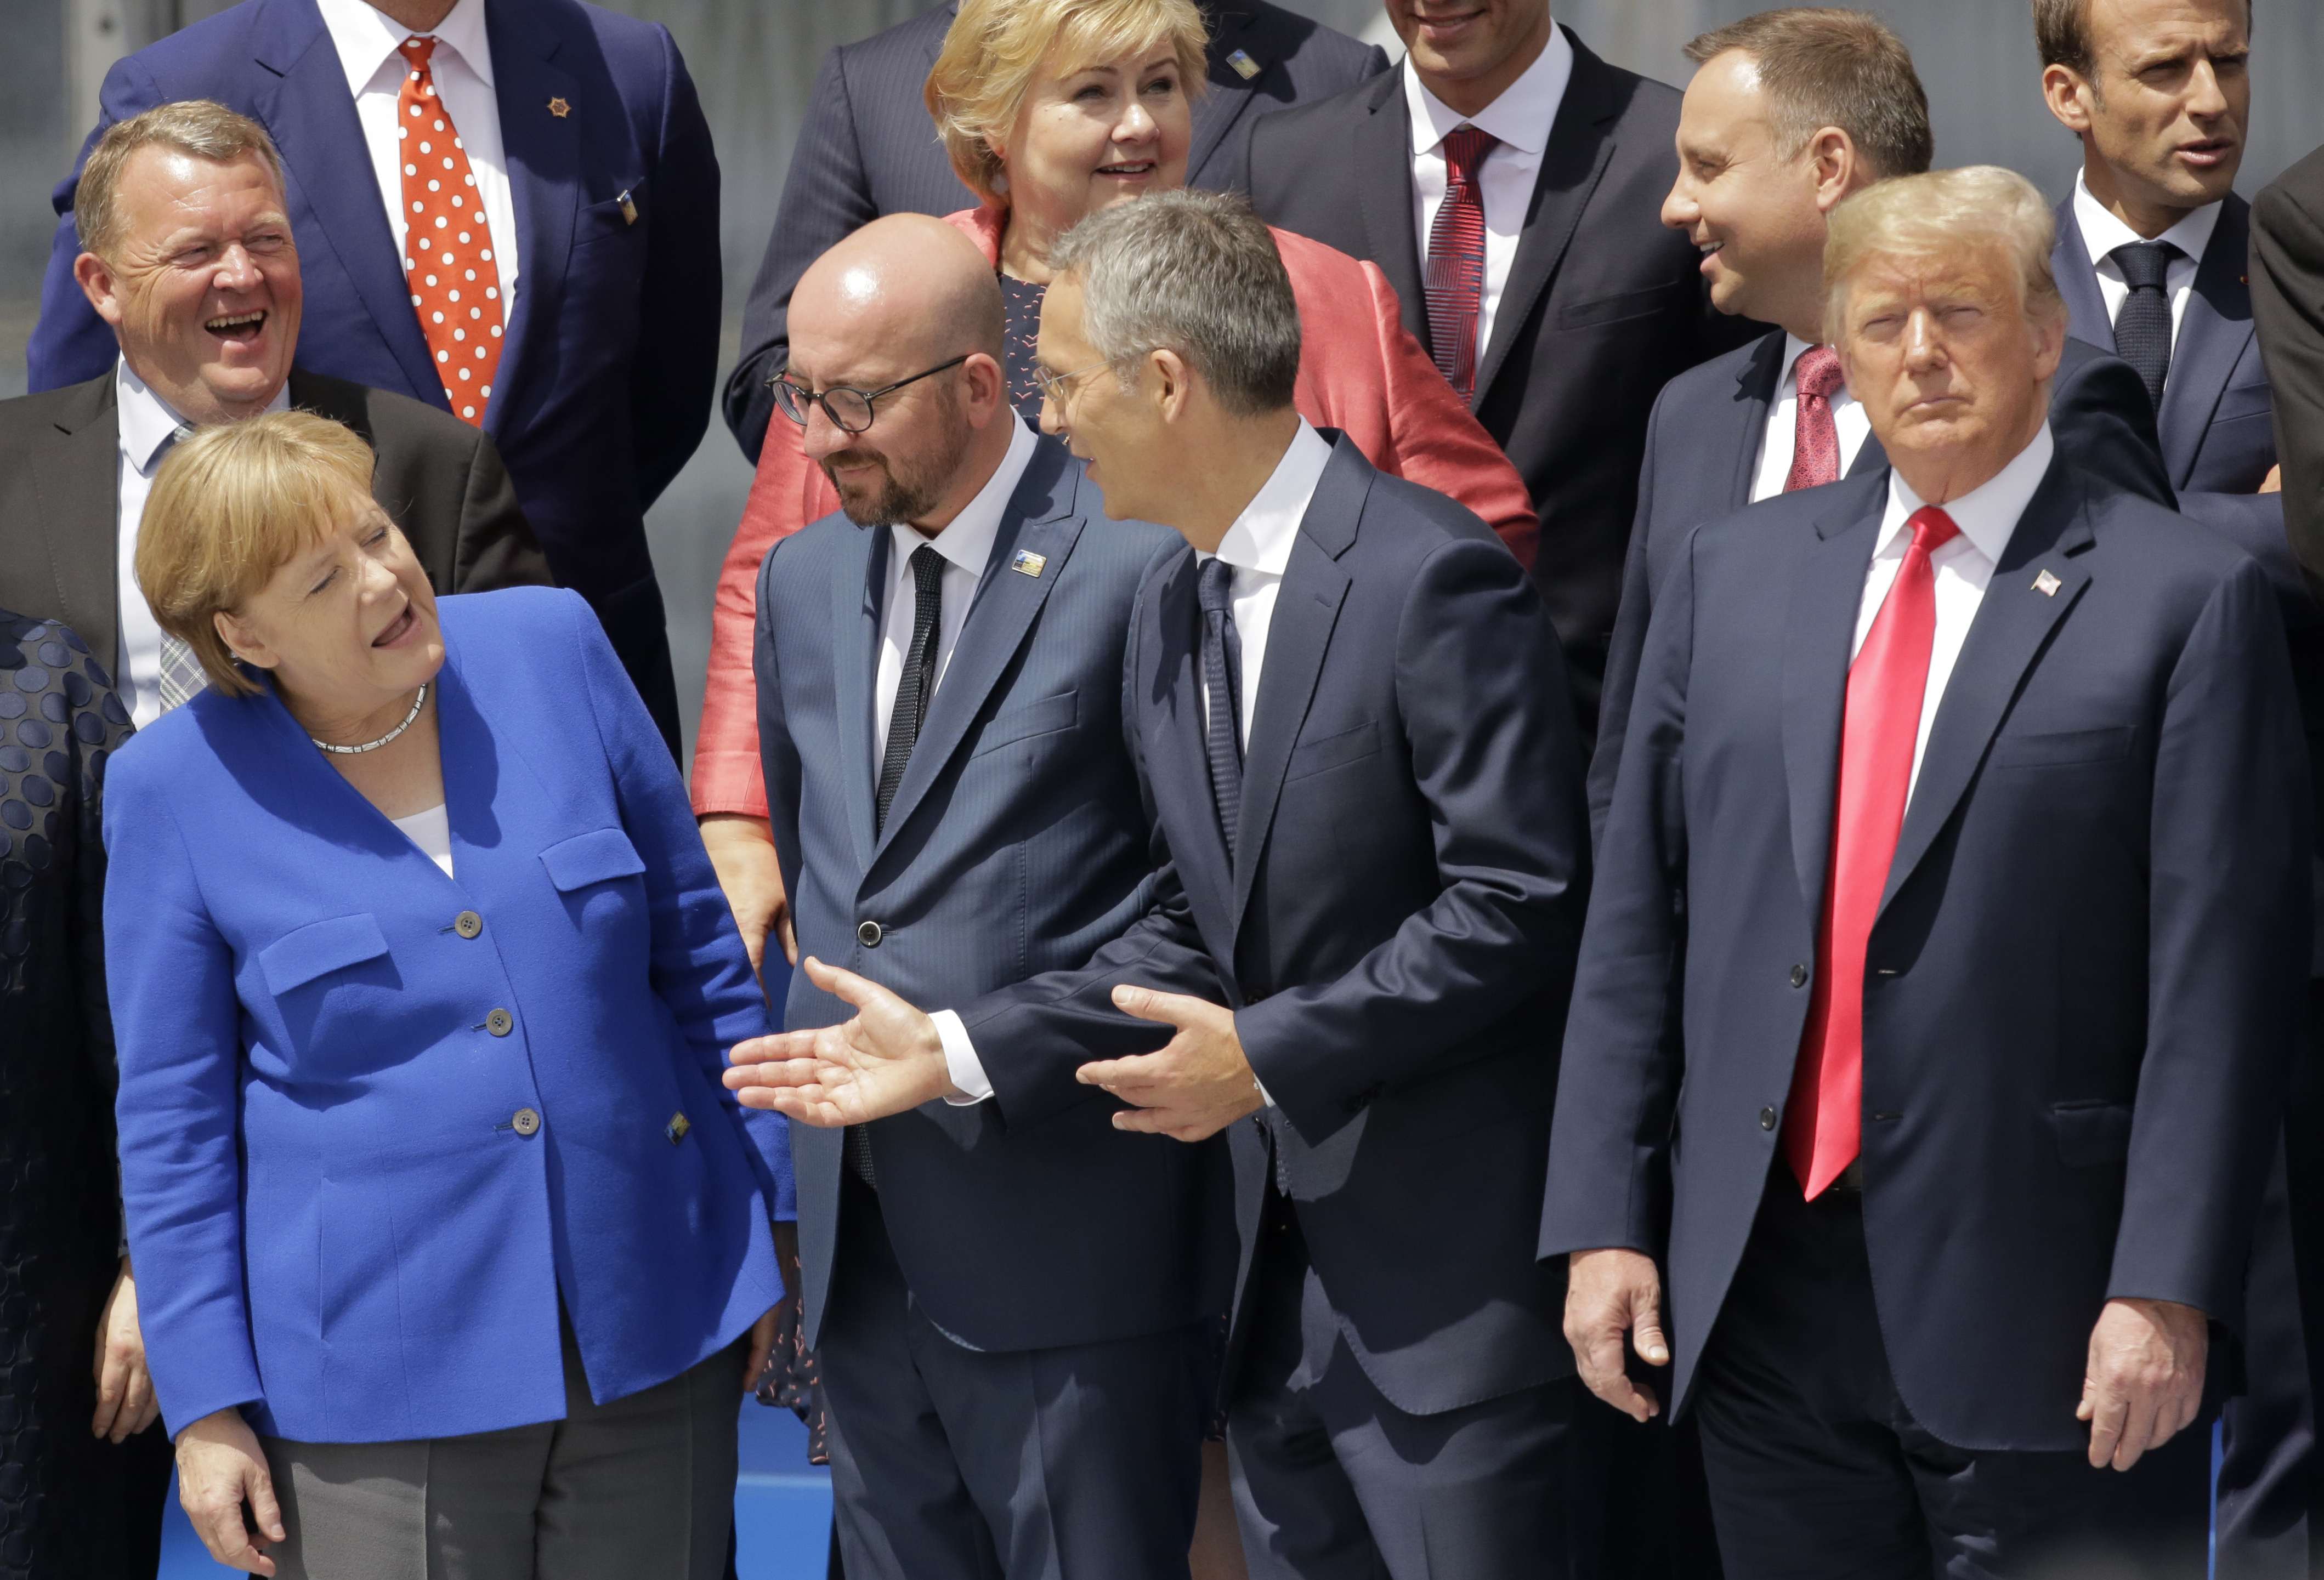 (L-R) German Chancellor Angela Merkel, Belgian Prime Minister Charles Michel, NATO Secretary-General Jens Stoltenberg and U.S. President Donald Trump, watch a fly-by during a summit of heads of state and government at NATO headquarters in Brussels, J...